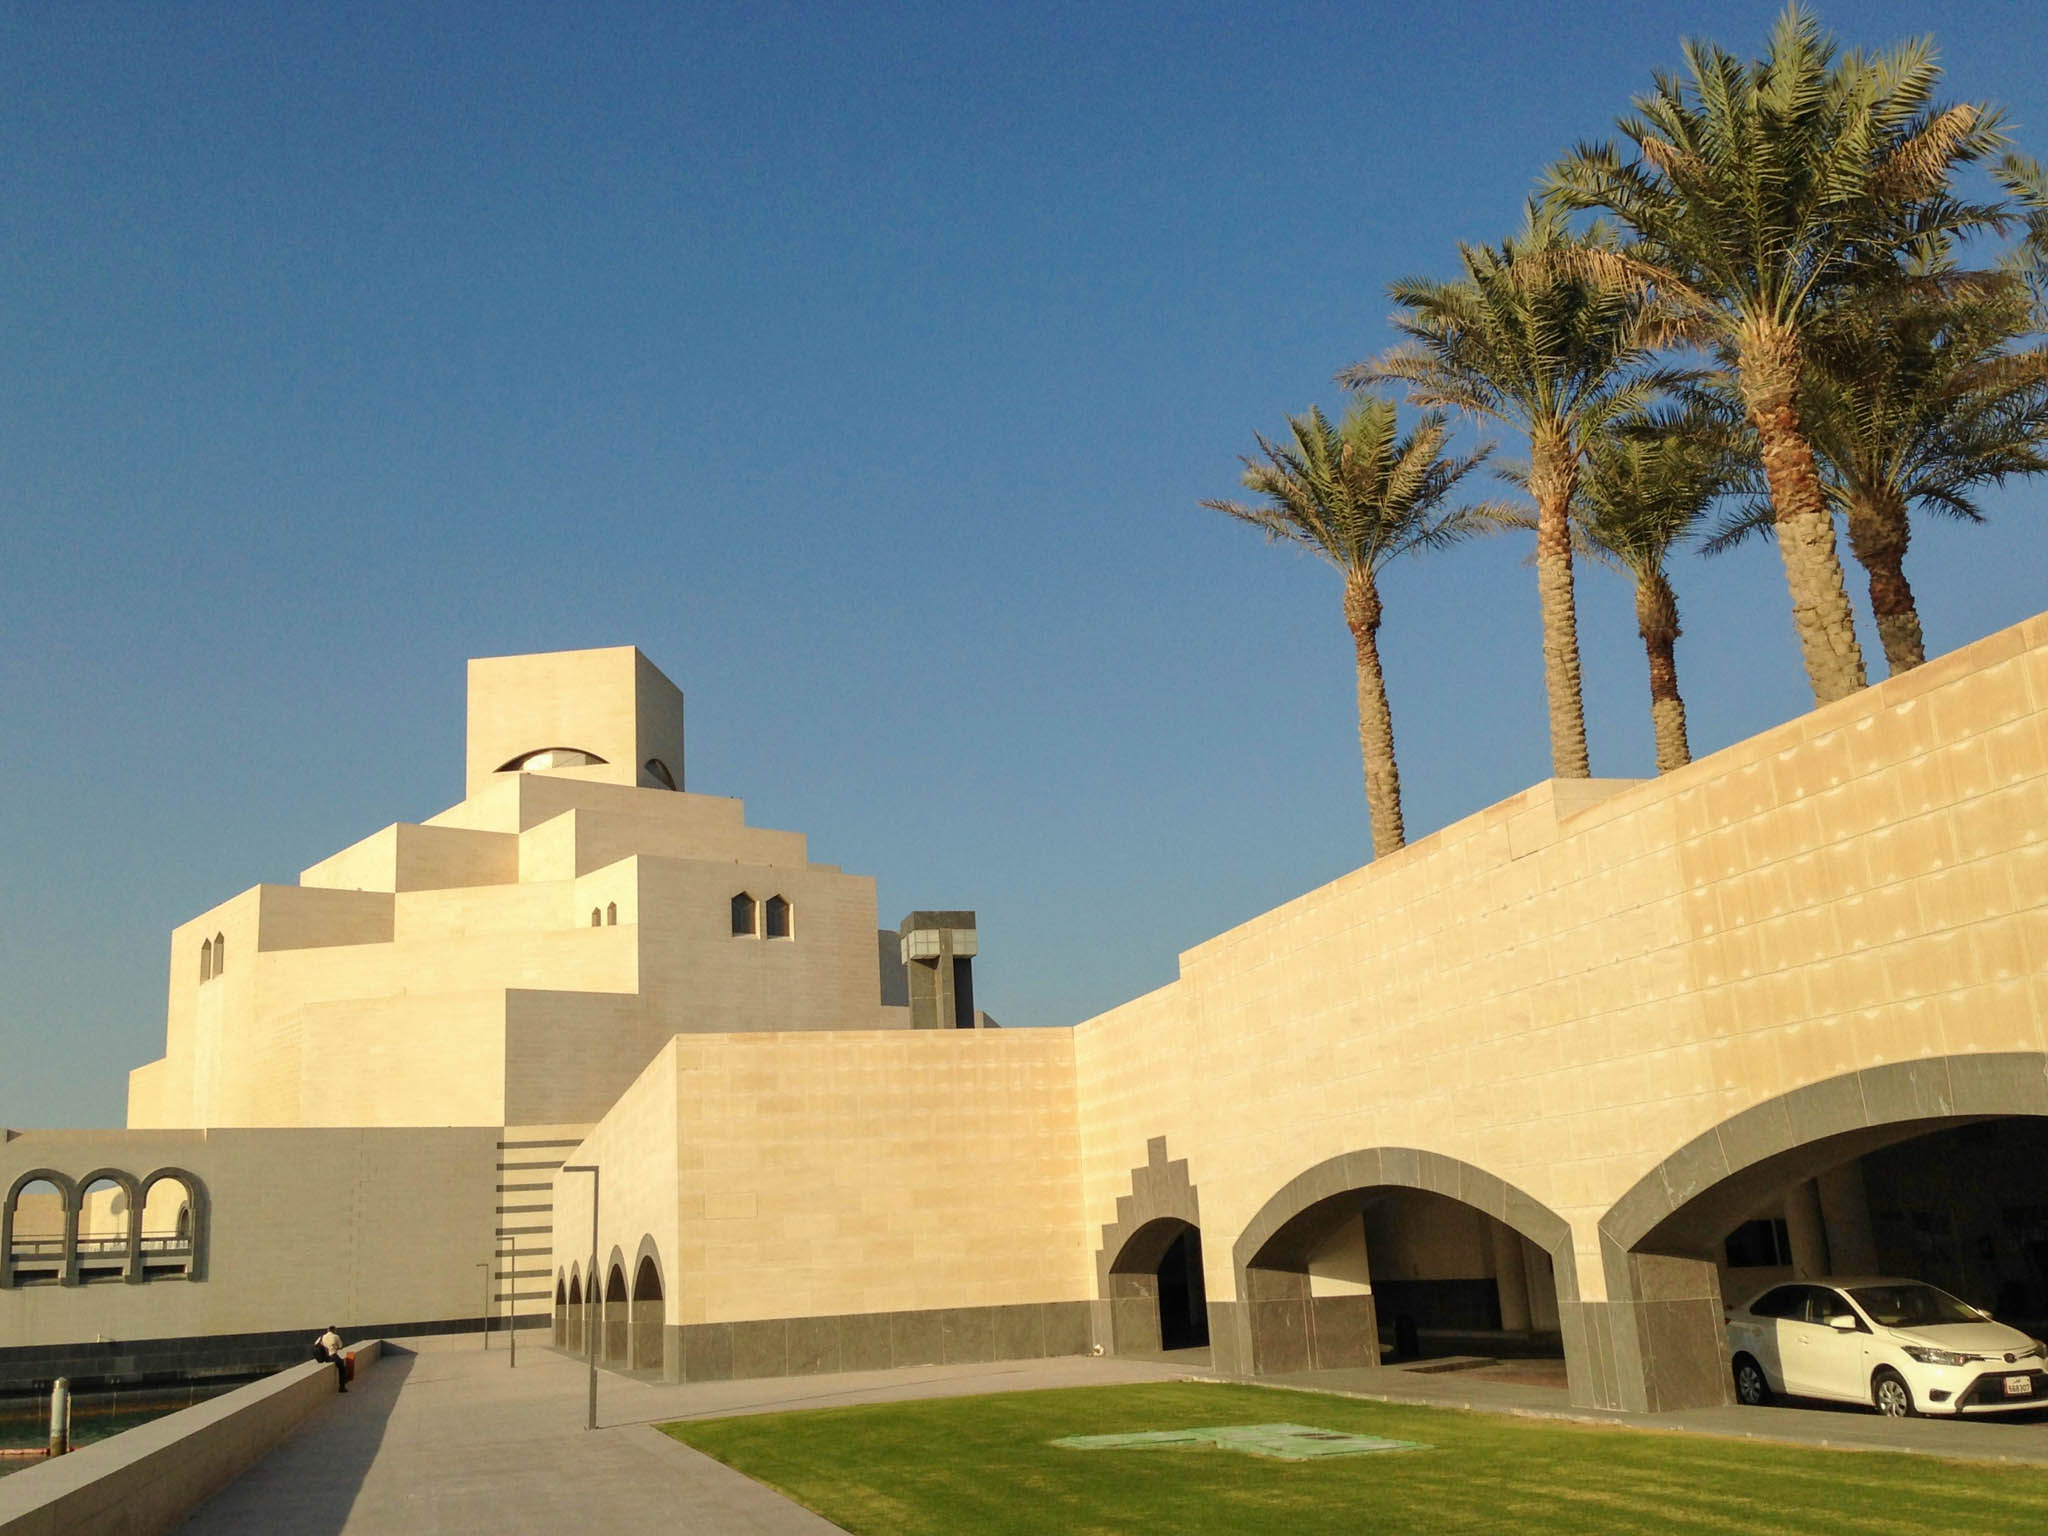 Het Museum of Islamic Art is van honingkleurige kalksteen